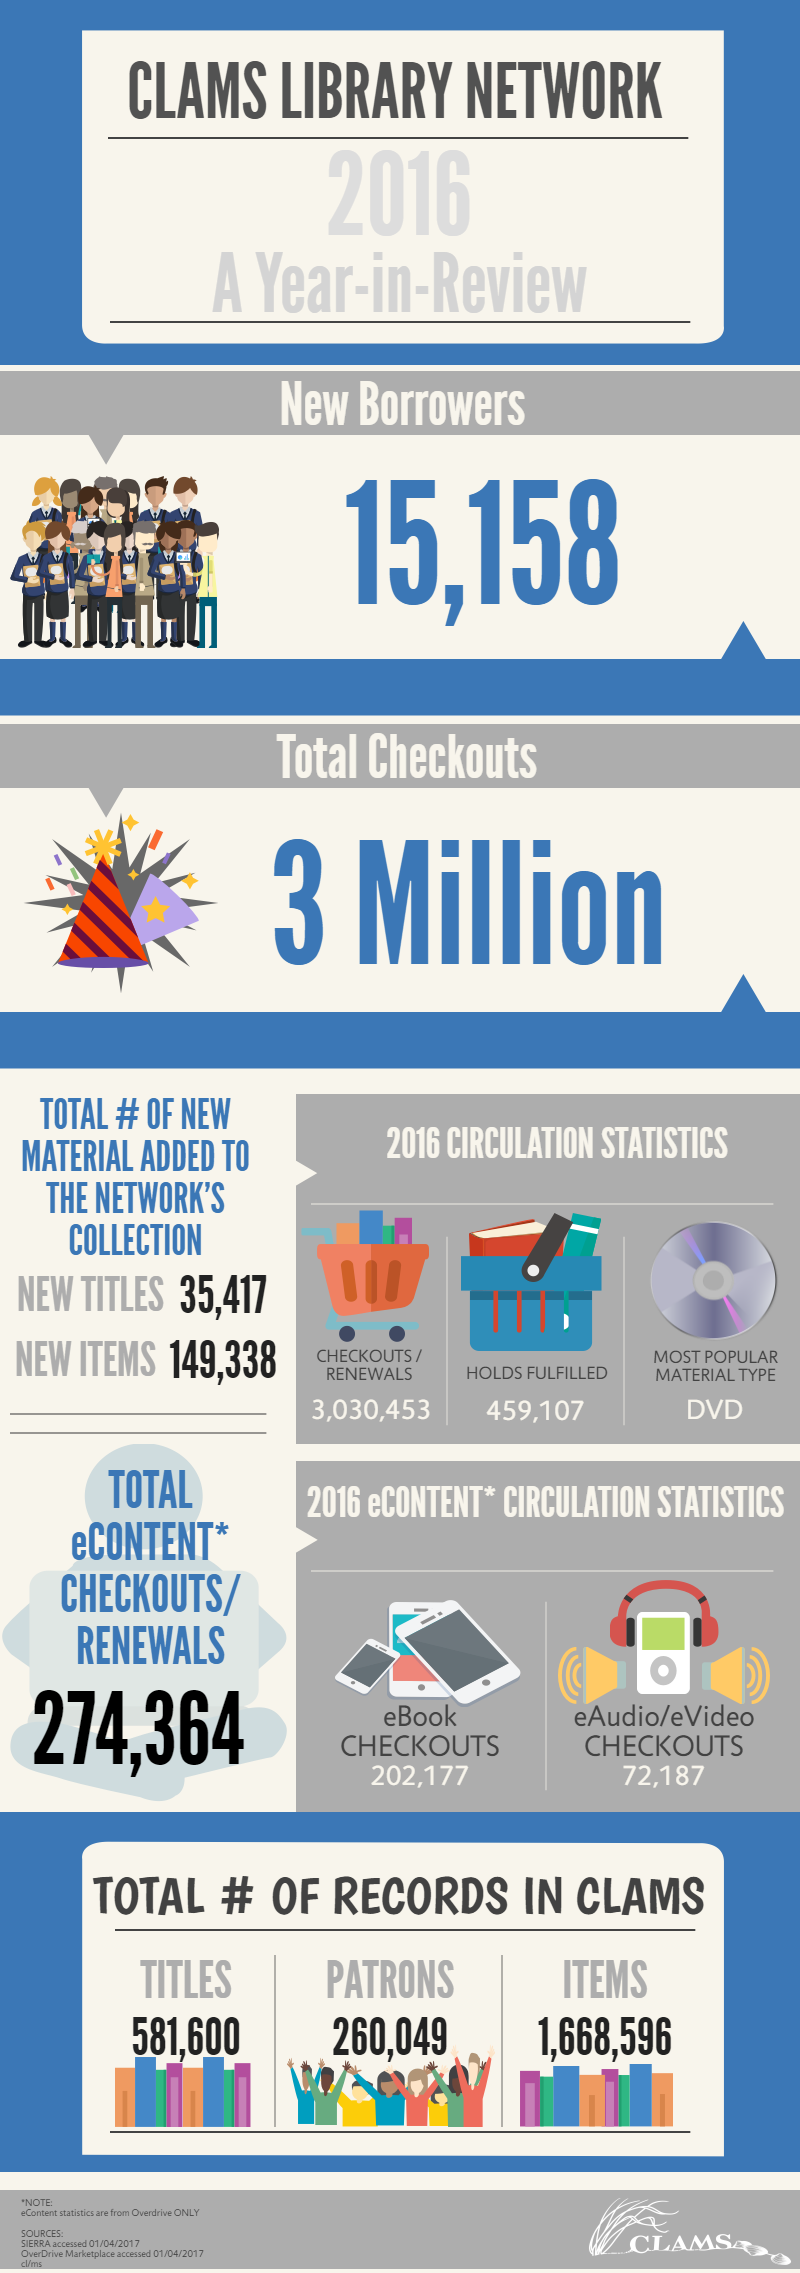 CLAMS Library Network 2016 A Year in Review. New borrowers 15,158. Total checkouts 3 million. Total number of new material added to the network's collection, new titles 35,417, new items 149,338. 2016 circulation statistics, checkouts and renewals 3,030,453, holds fulfilled 459,107, most popular material type is DVD. Total eContent checkouts and renewals 274,364. 2016 eContent circulation statistics, eBook checkouts 202,177, eAudio and eVideo 72,187. Total number of records in CLAMS. 581,600 titles. 260,049 patrons. 1,668,596 items.